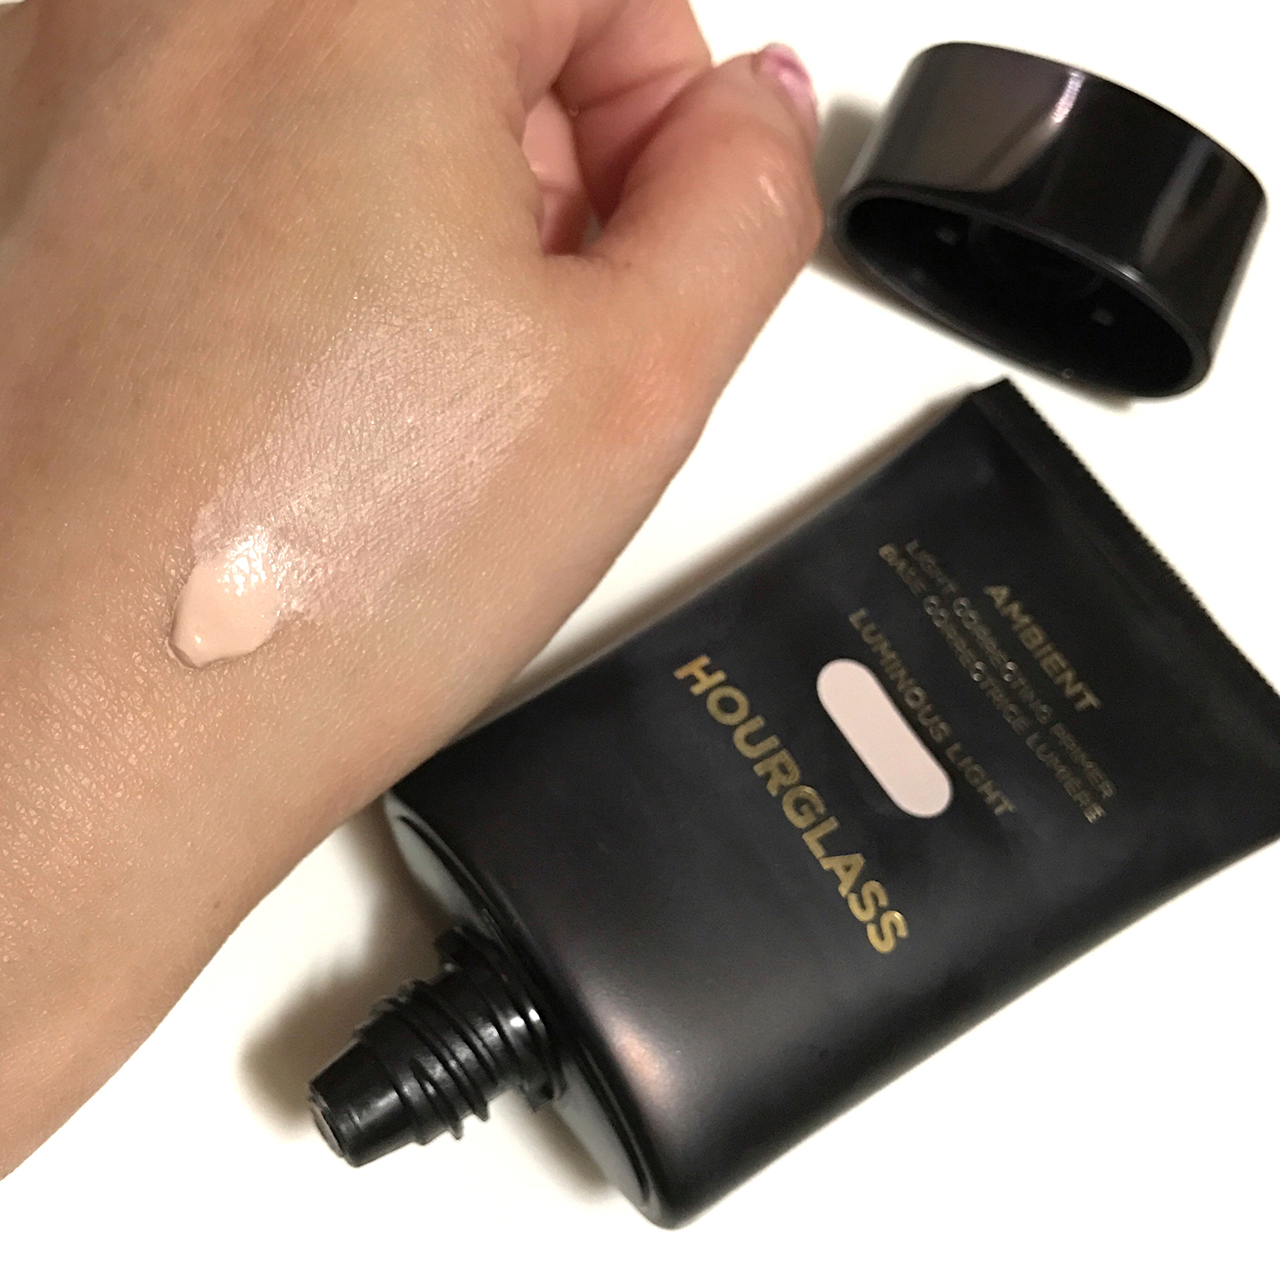 Hourglass Ambient Light Correcting Primer in Luminous Light swatch